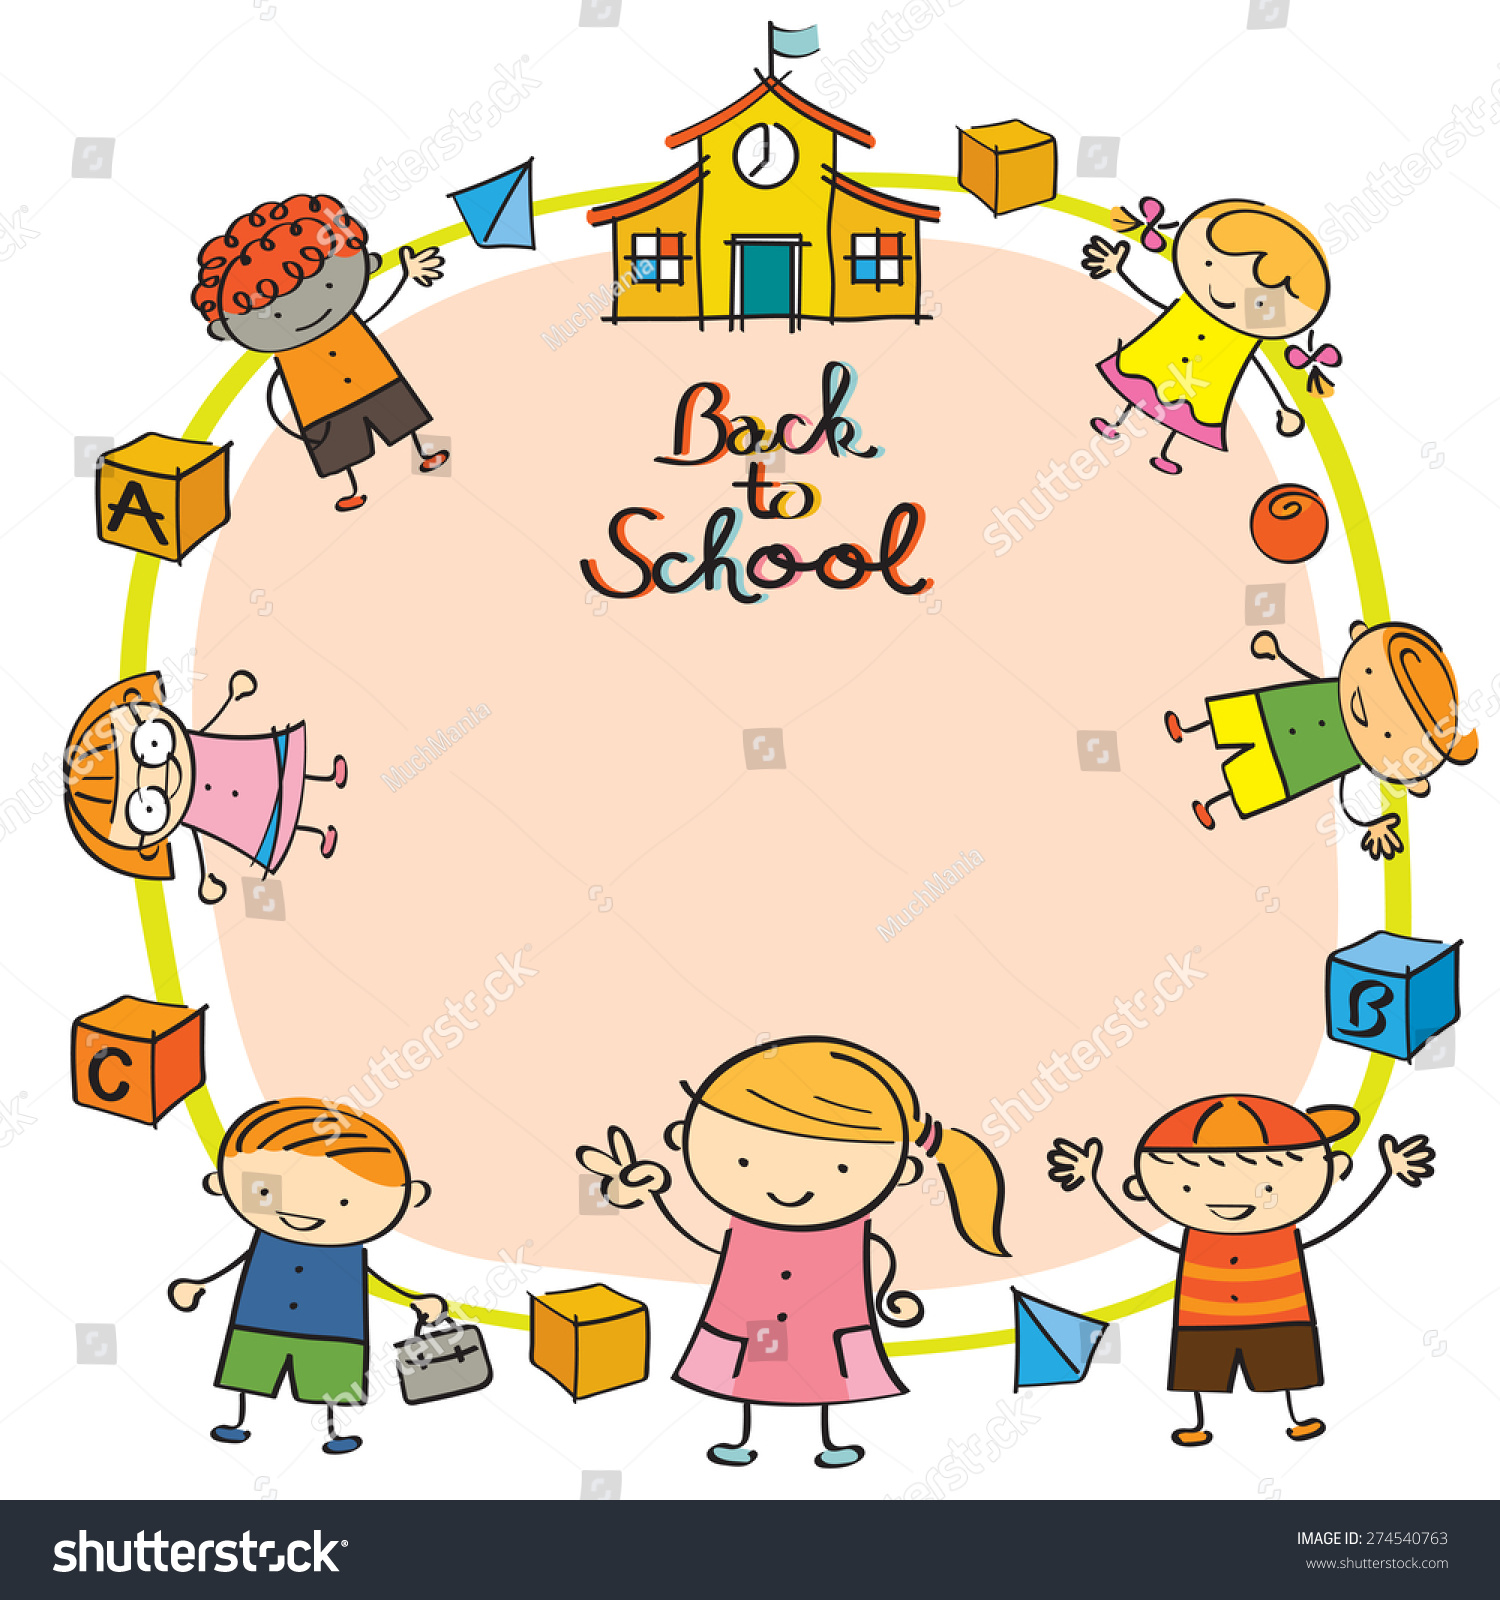 kindergarten kids back to school frame drawing style preschool education learning - Drawing Pictures For Kindergarten